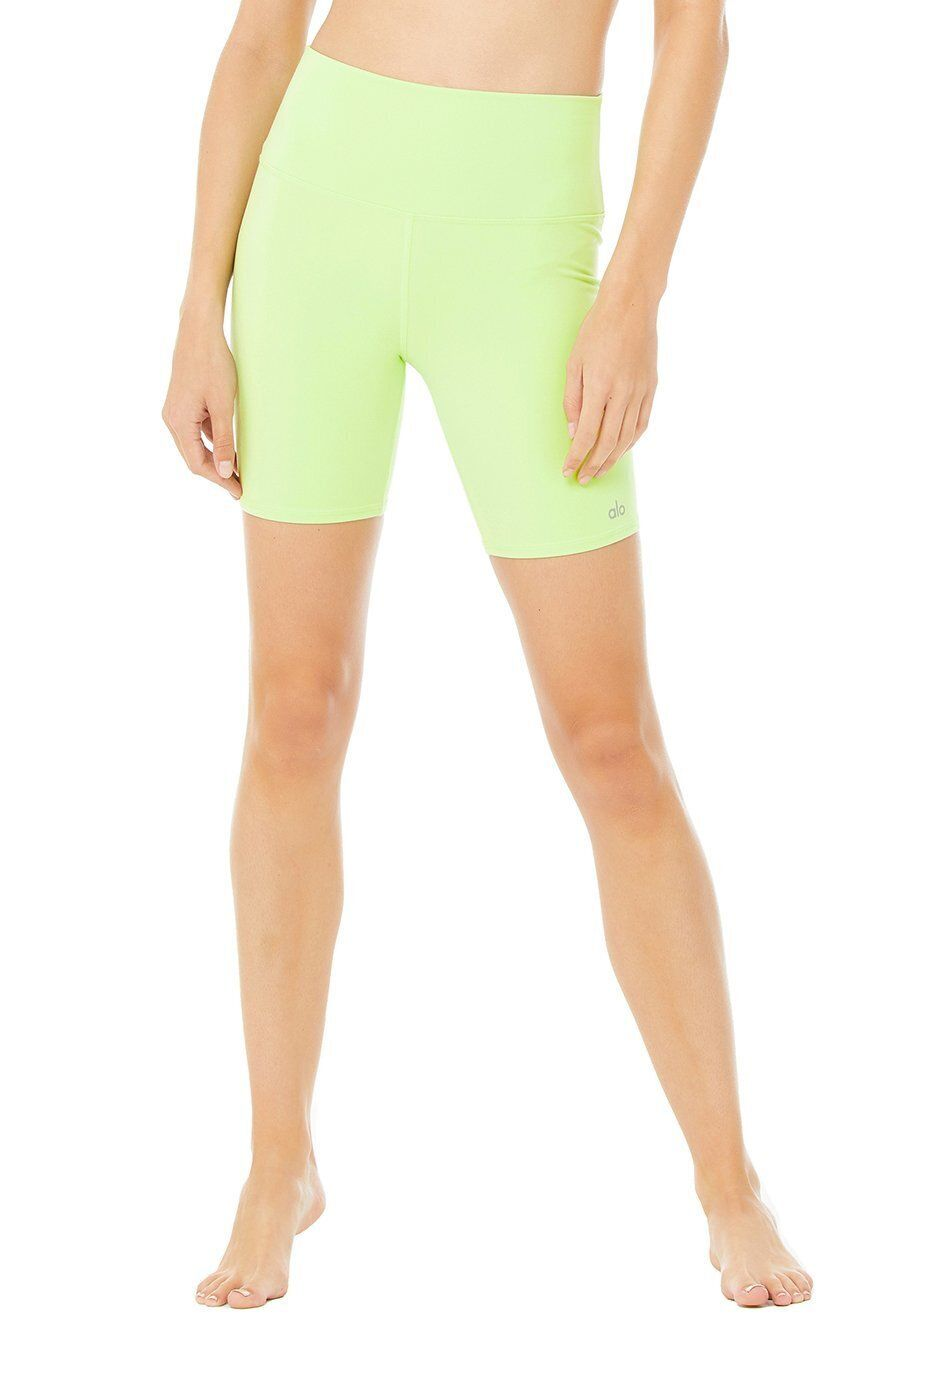 The Best High-Waisted Bike Shorts For Fashion 10